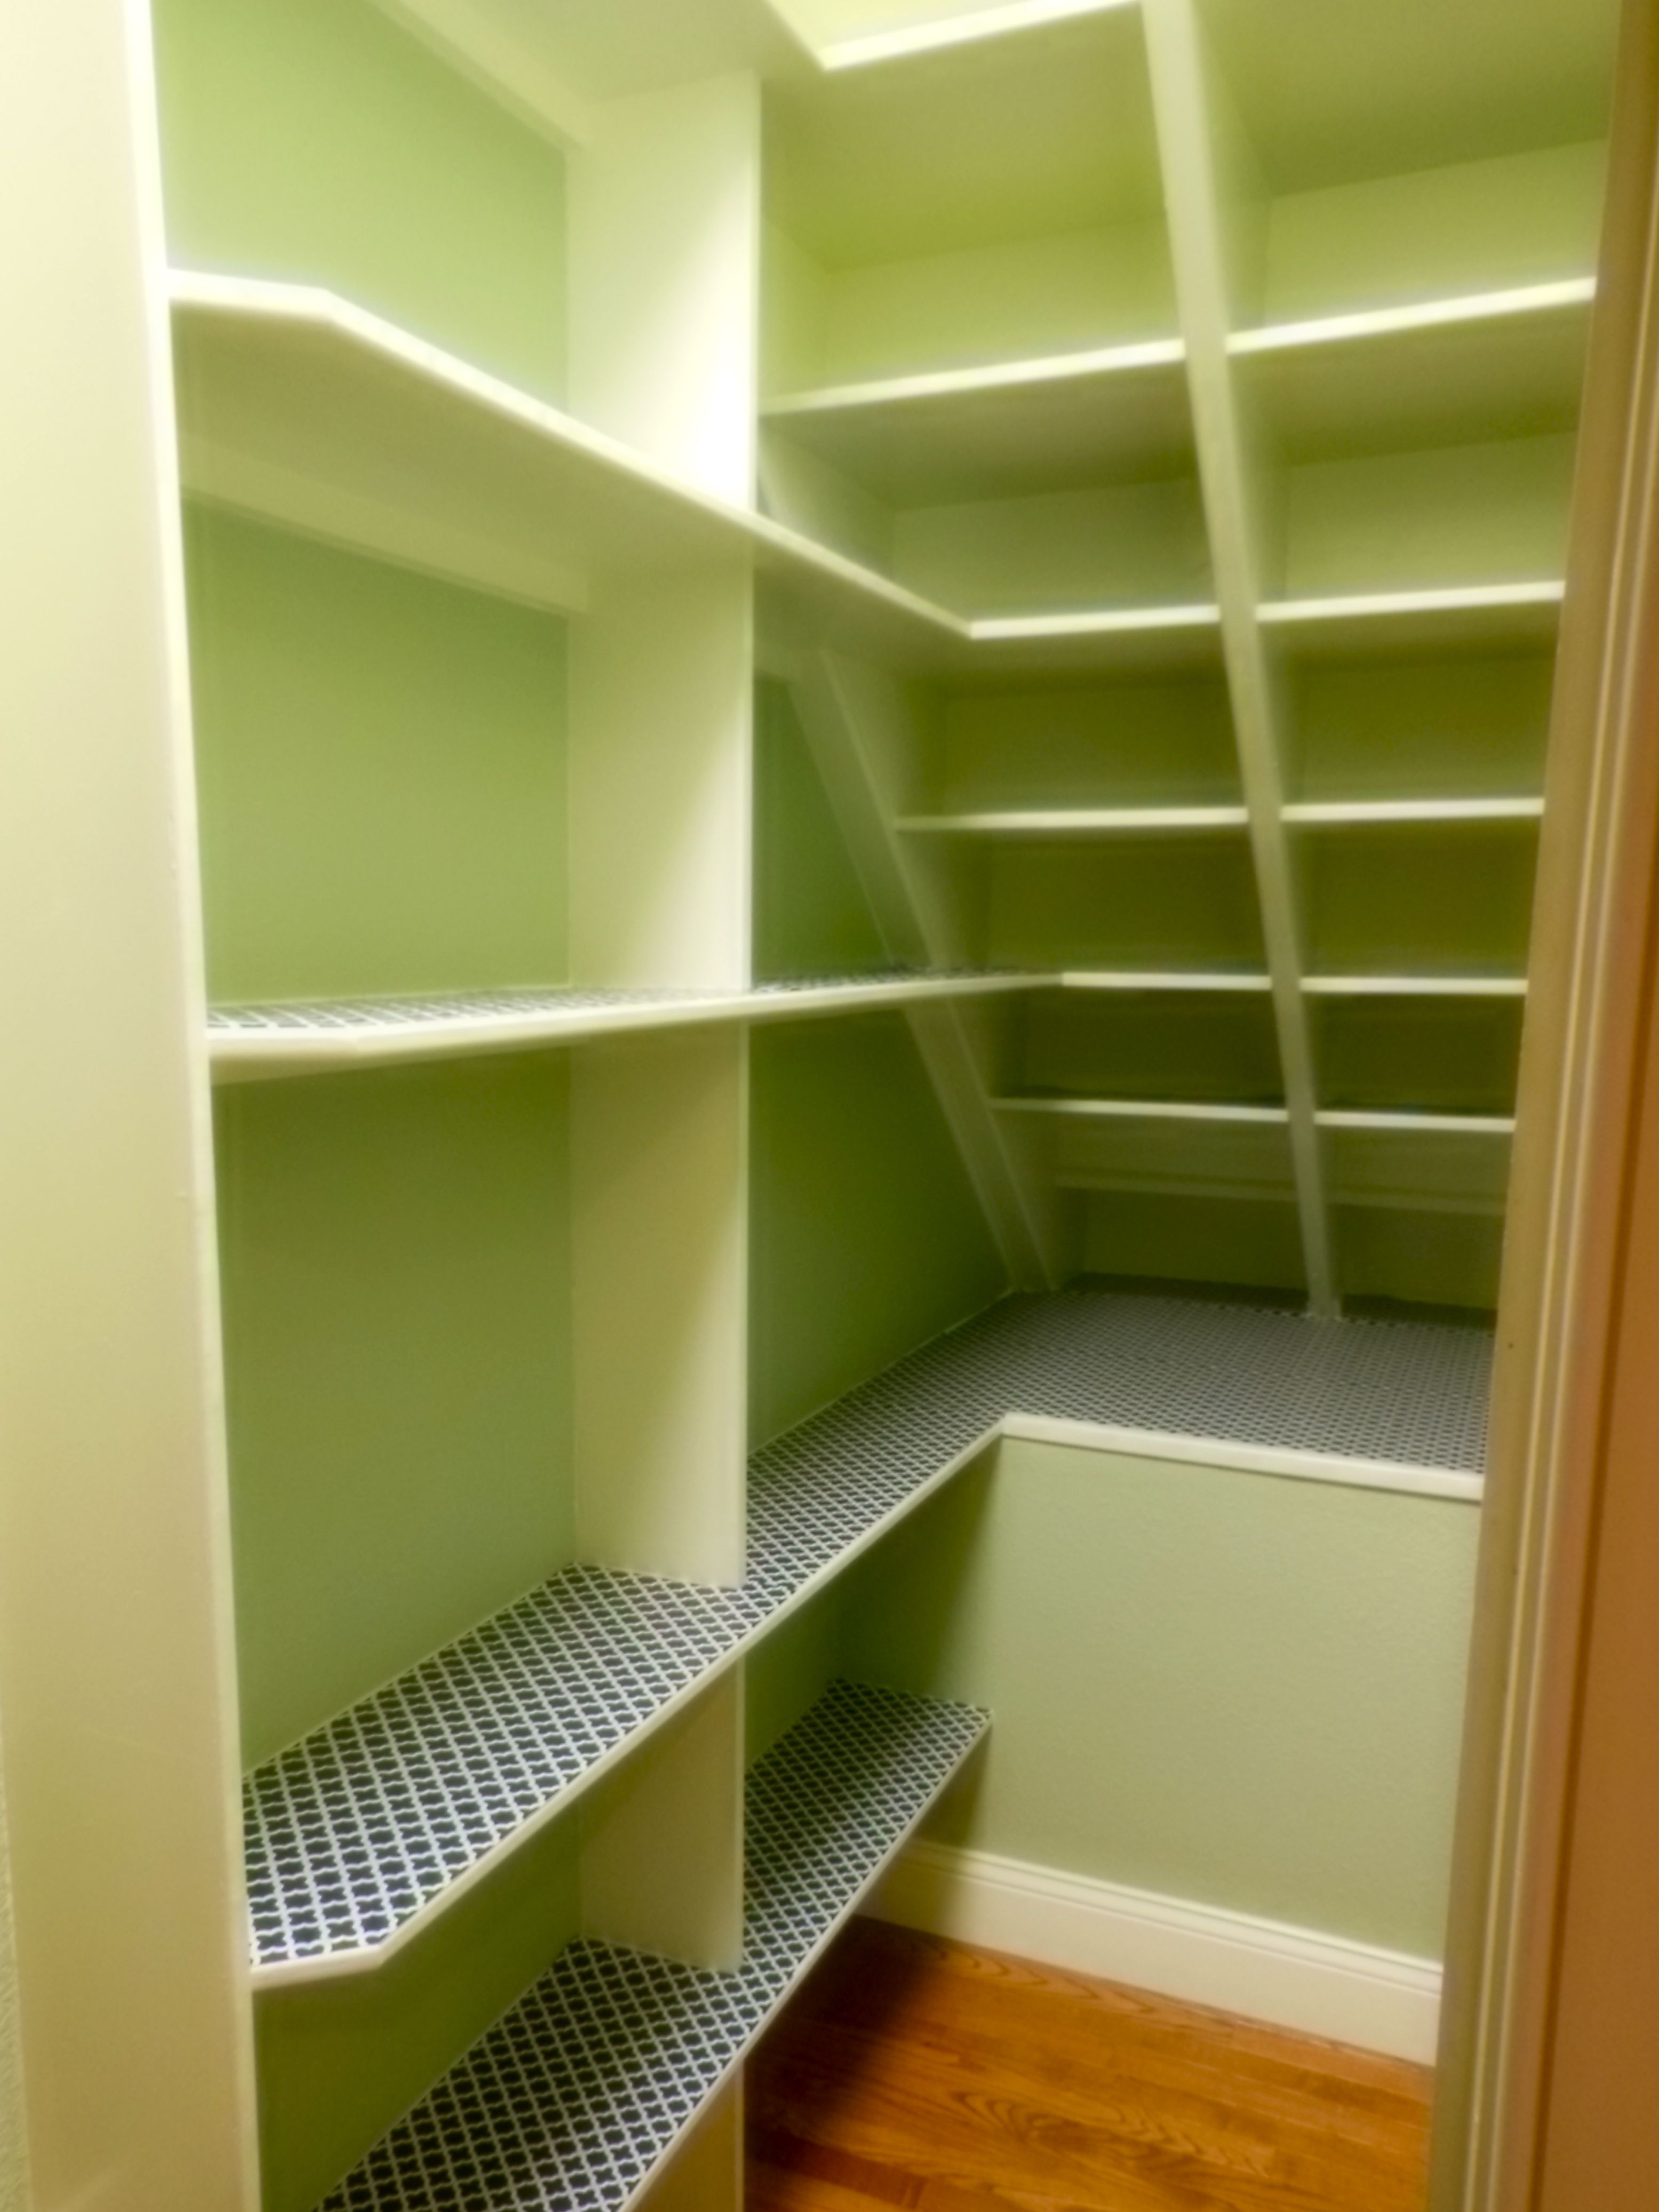 Bon My Remodeled Pantry .. Went From 23 Inches To Almost 11 Feet! Loving The  Space And Organization.